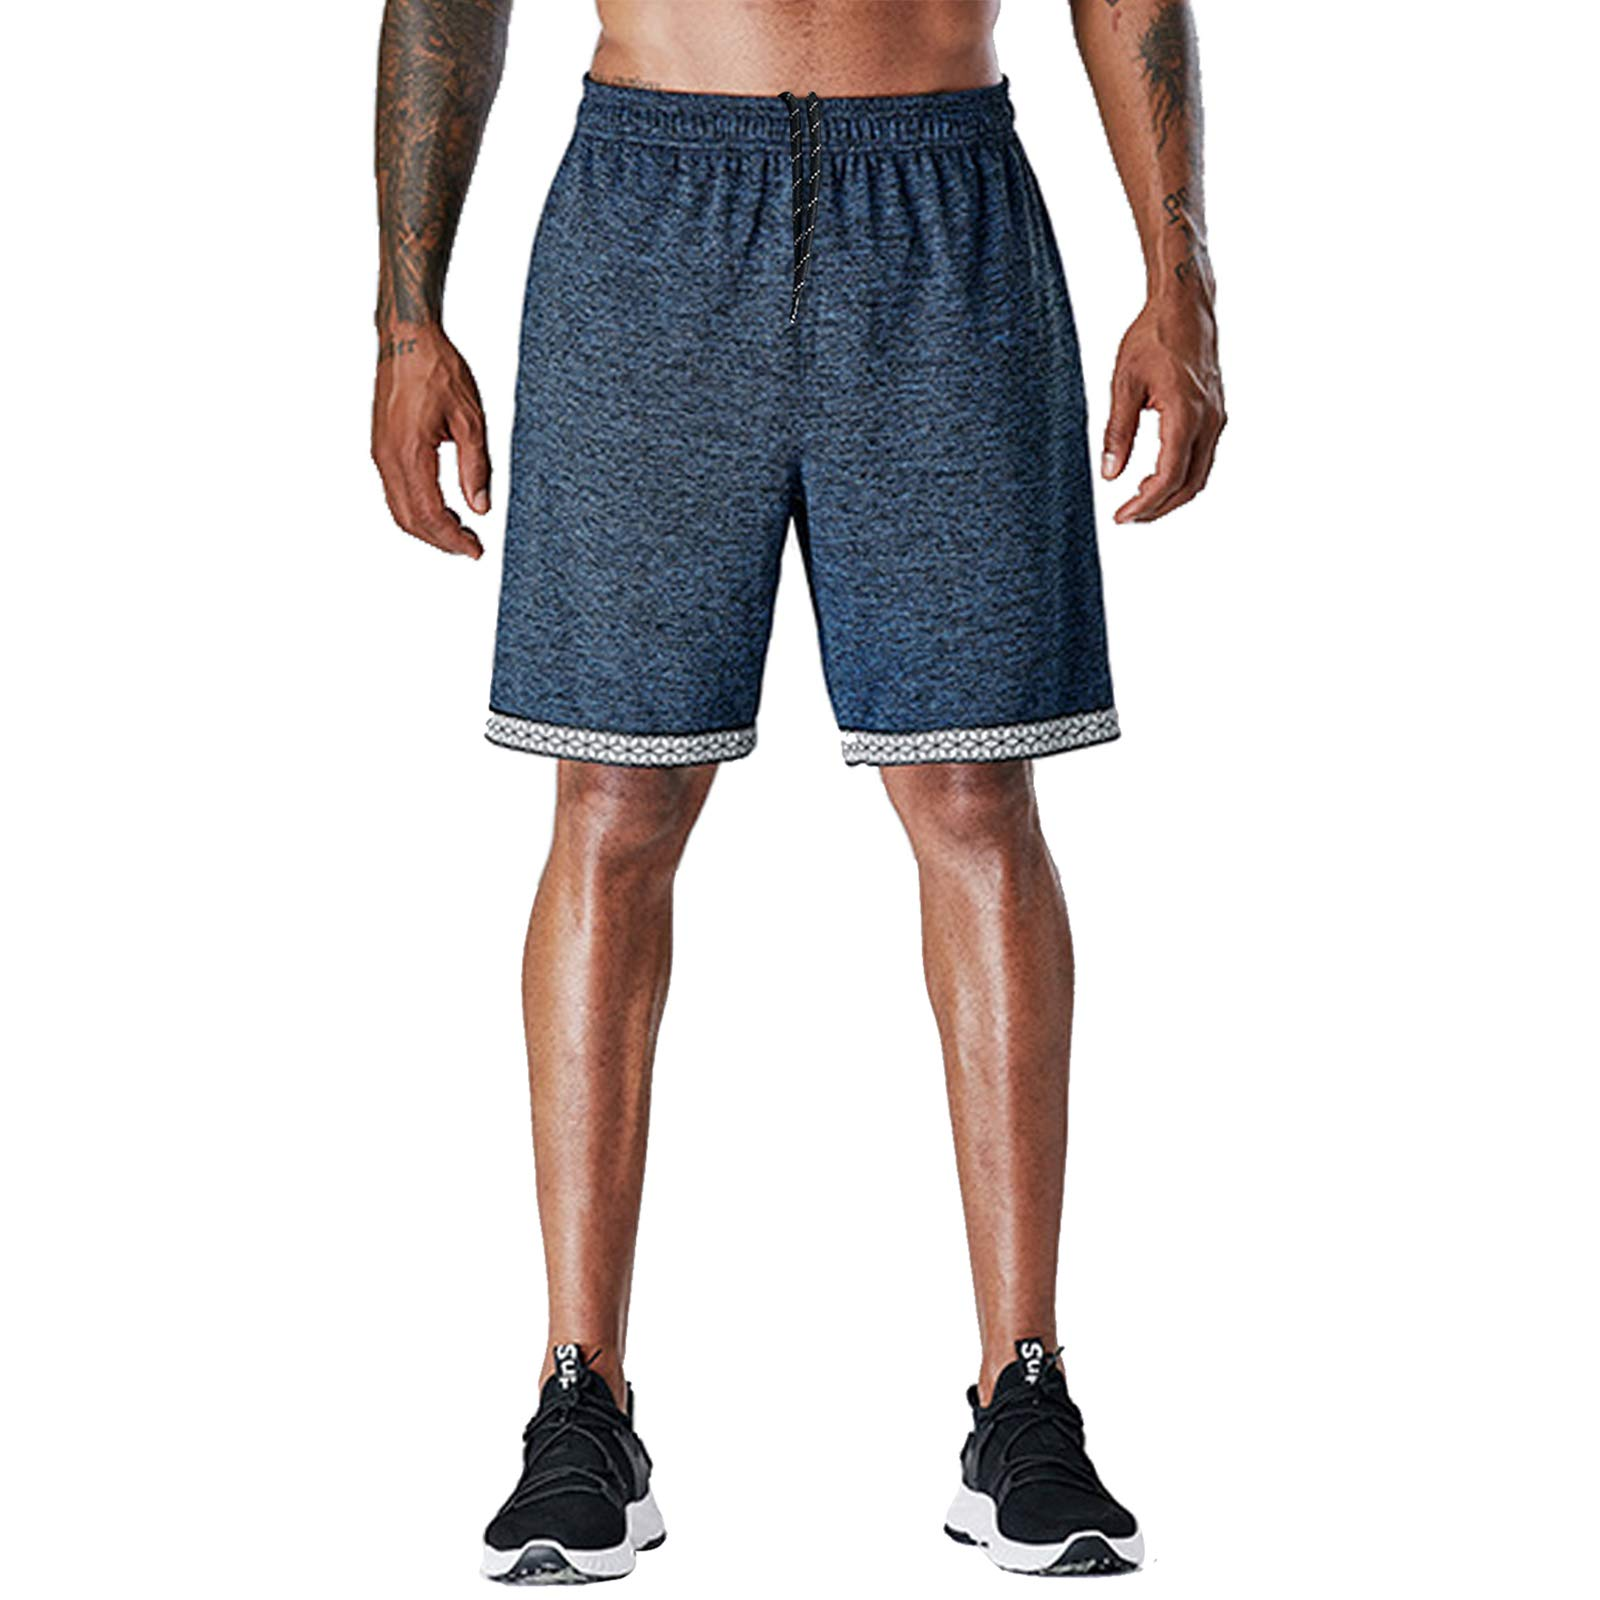 BUXKR Men's 7 Inch Athletic Running Shorts Training Workout Shorts with Pockets